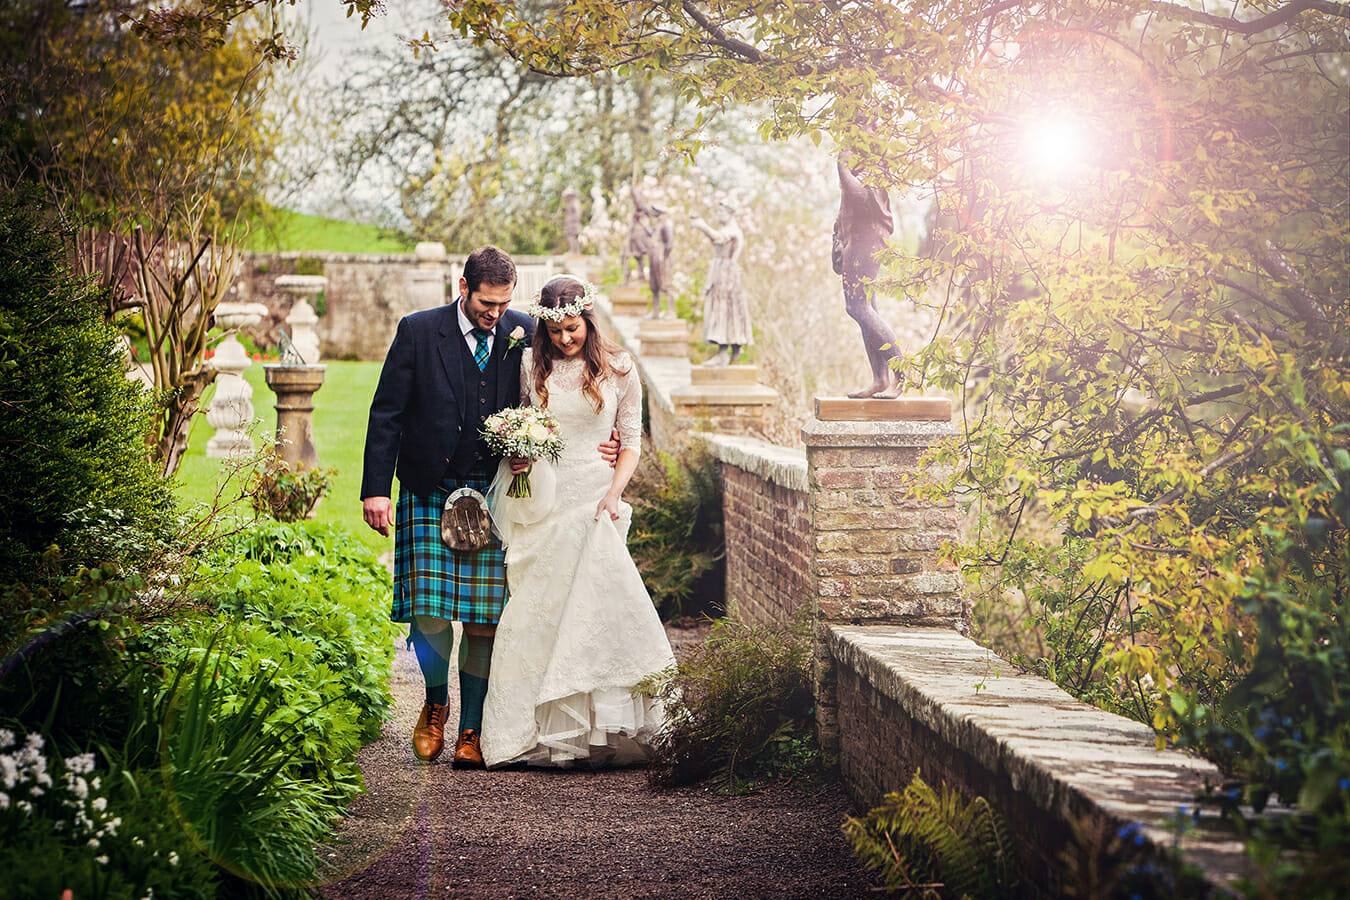 Two Of Us Wedding Photography: Focal Point Photography